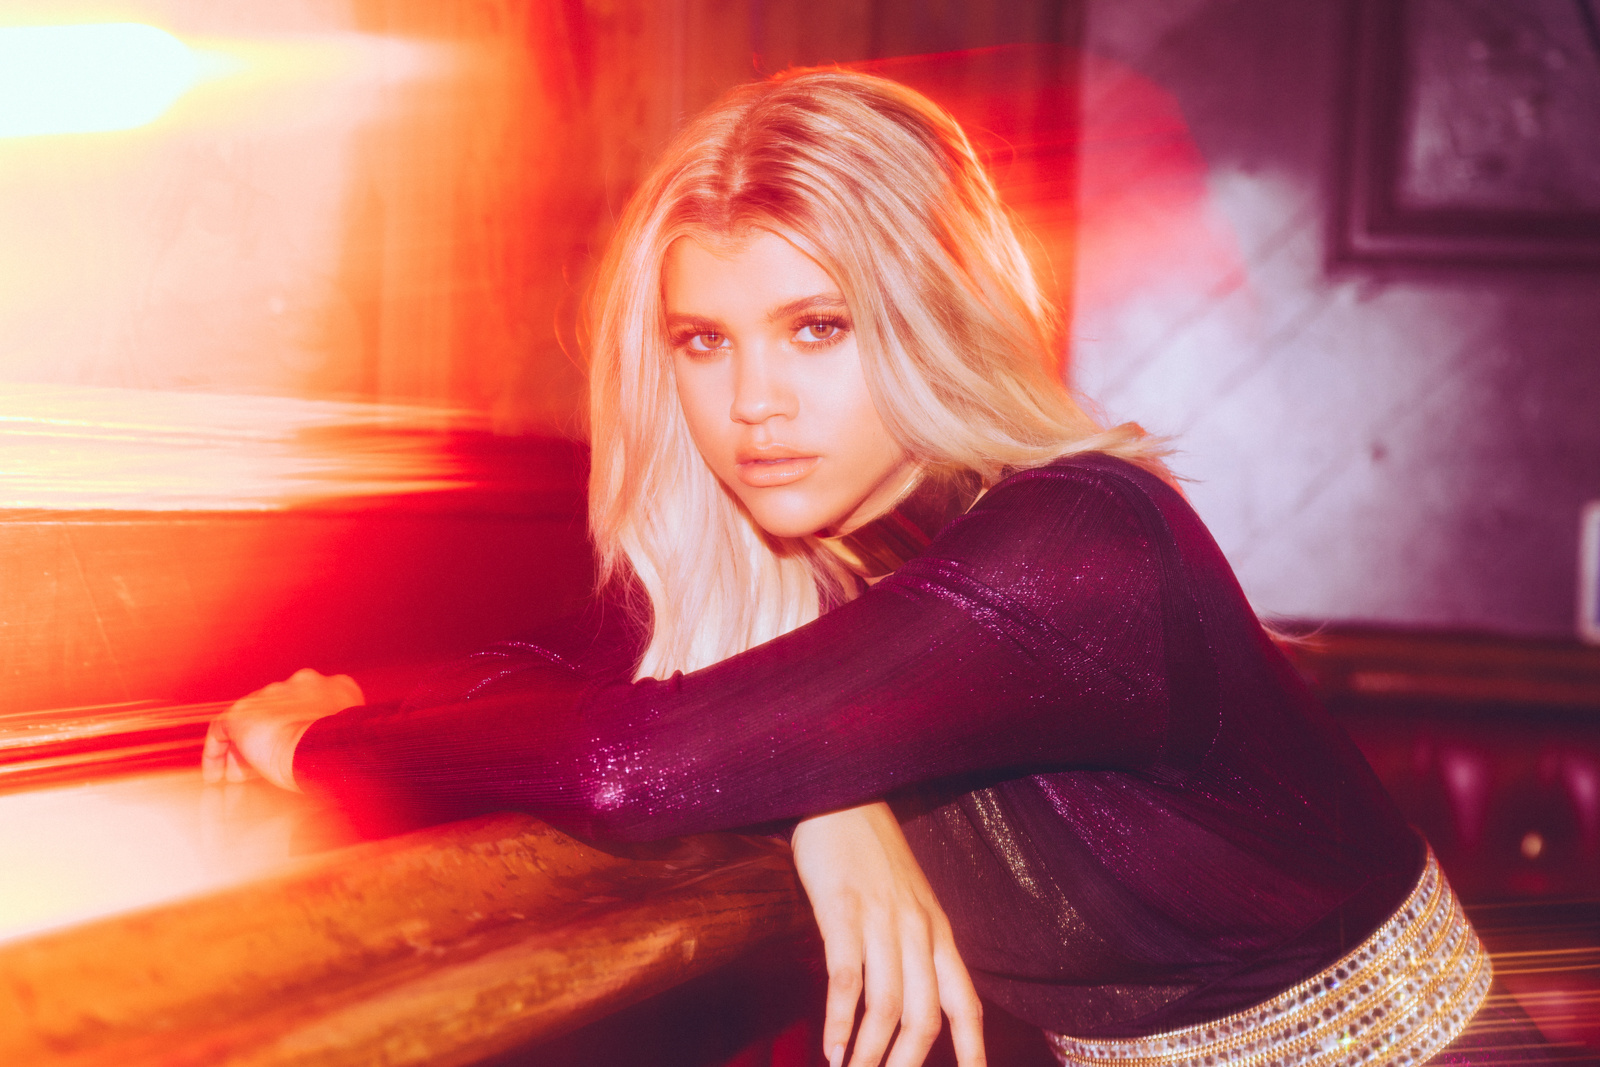 SOFIA RICHIE FOR PRETTY LITTLE THING